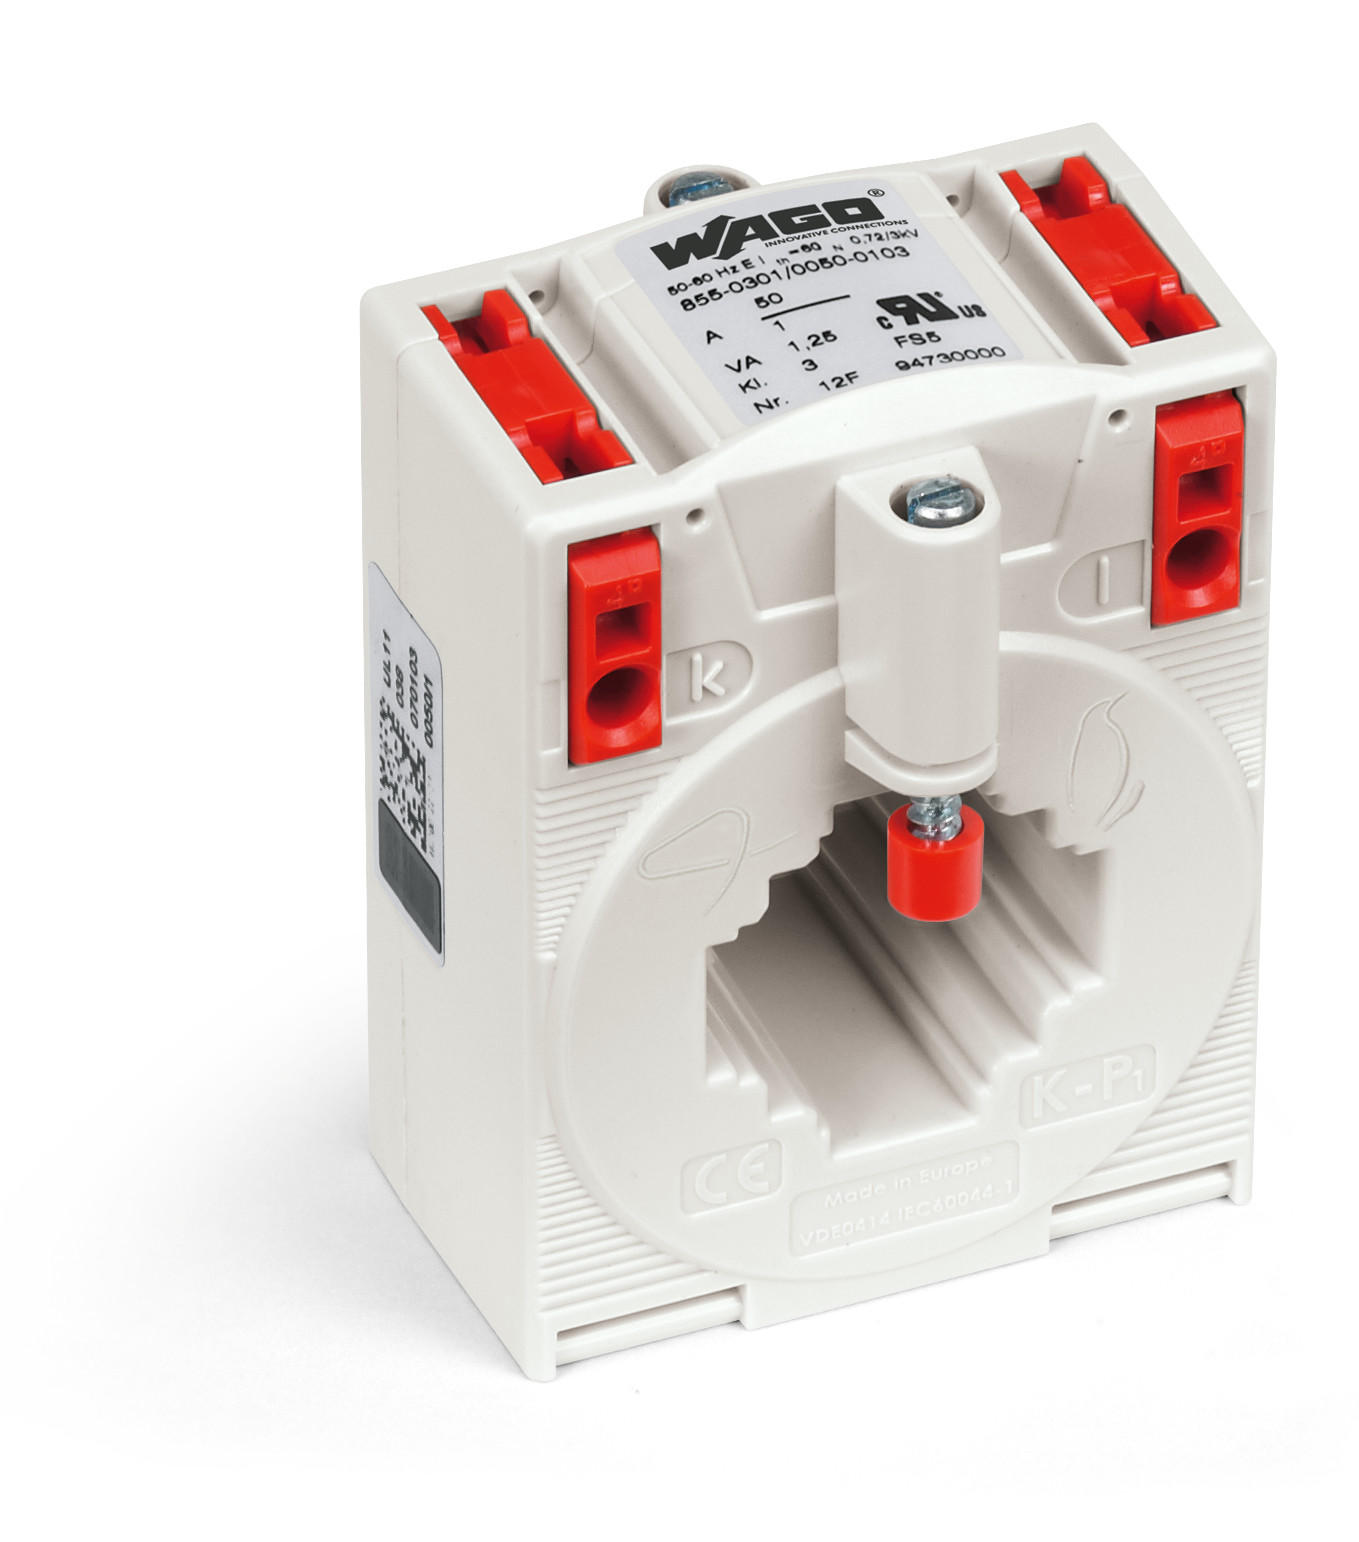 Plug-in current transformer; Primary rated current: 50 A; Secondary rated current: 1 A; Rated power: 1.25 VA; Accuracy class: 3